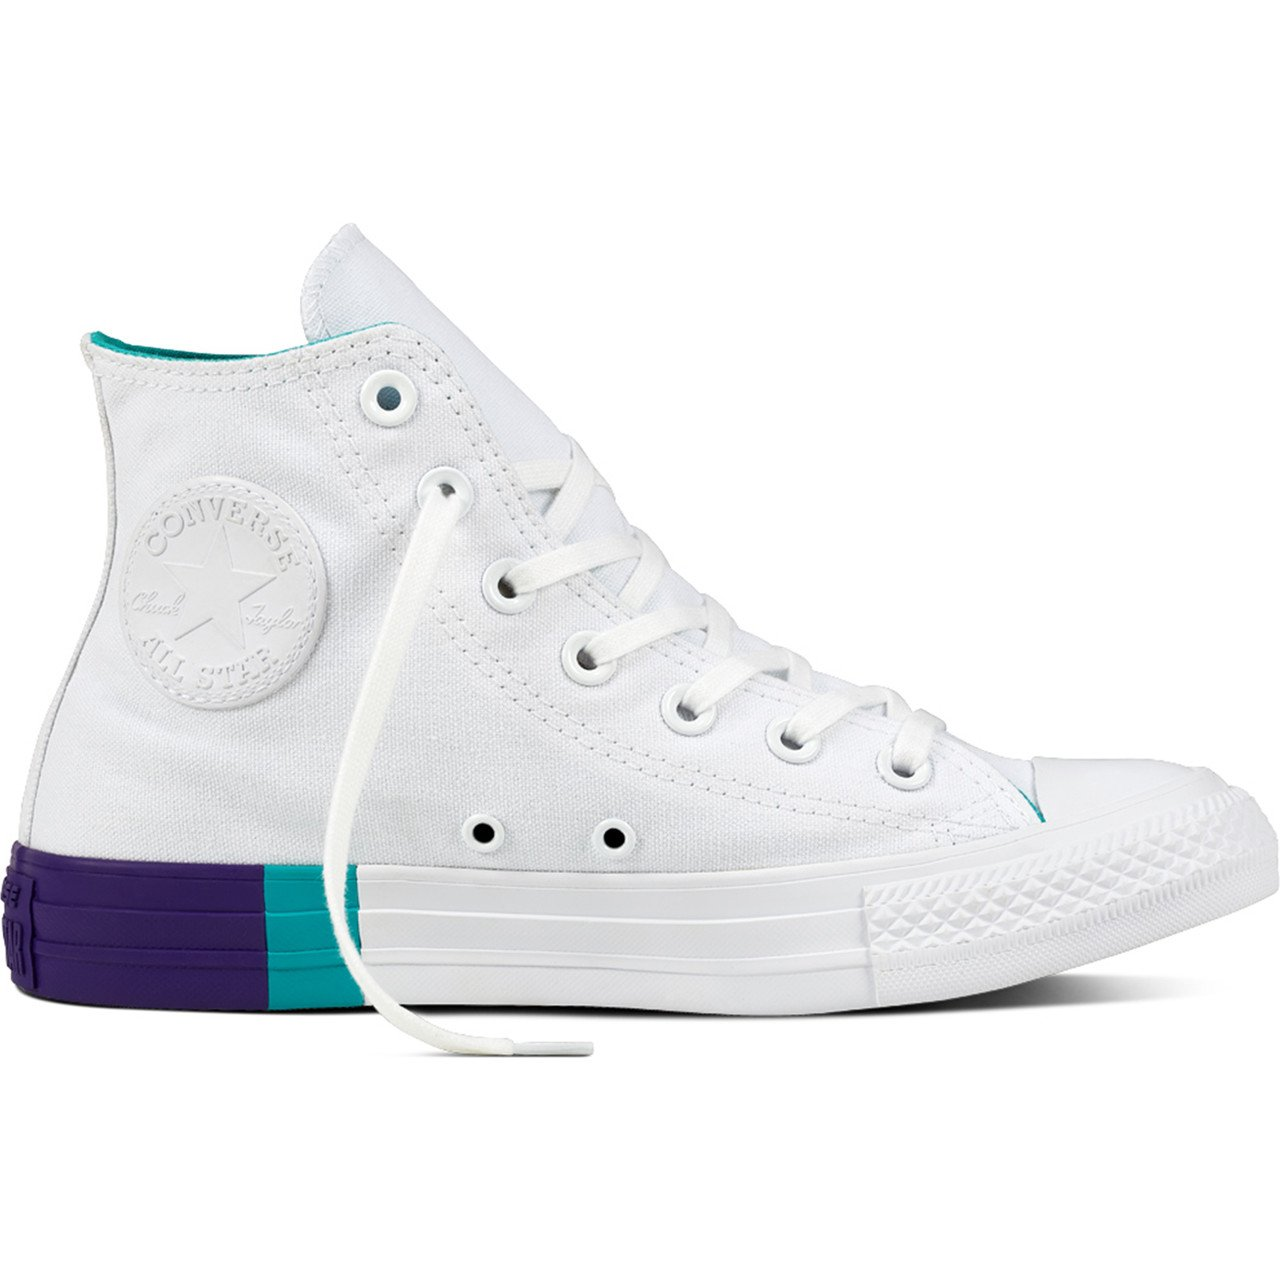 fe48c773bfd Amazon.com | Converse Chuck Taylor All Star Block Midsole Mens ...